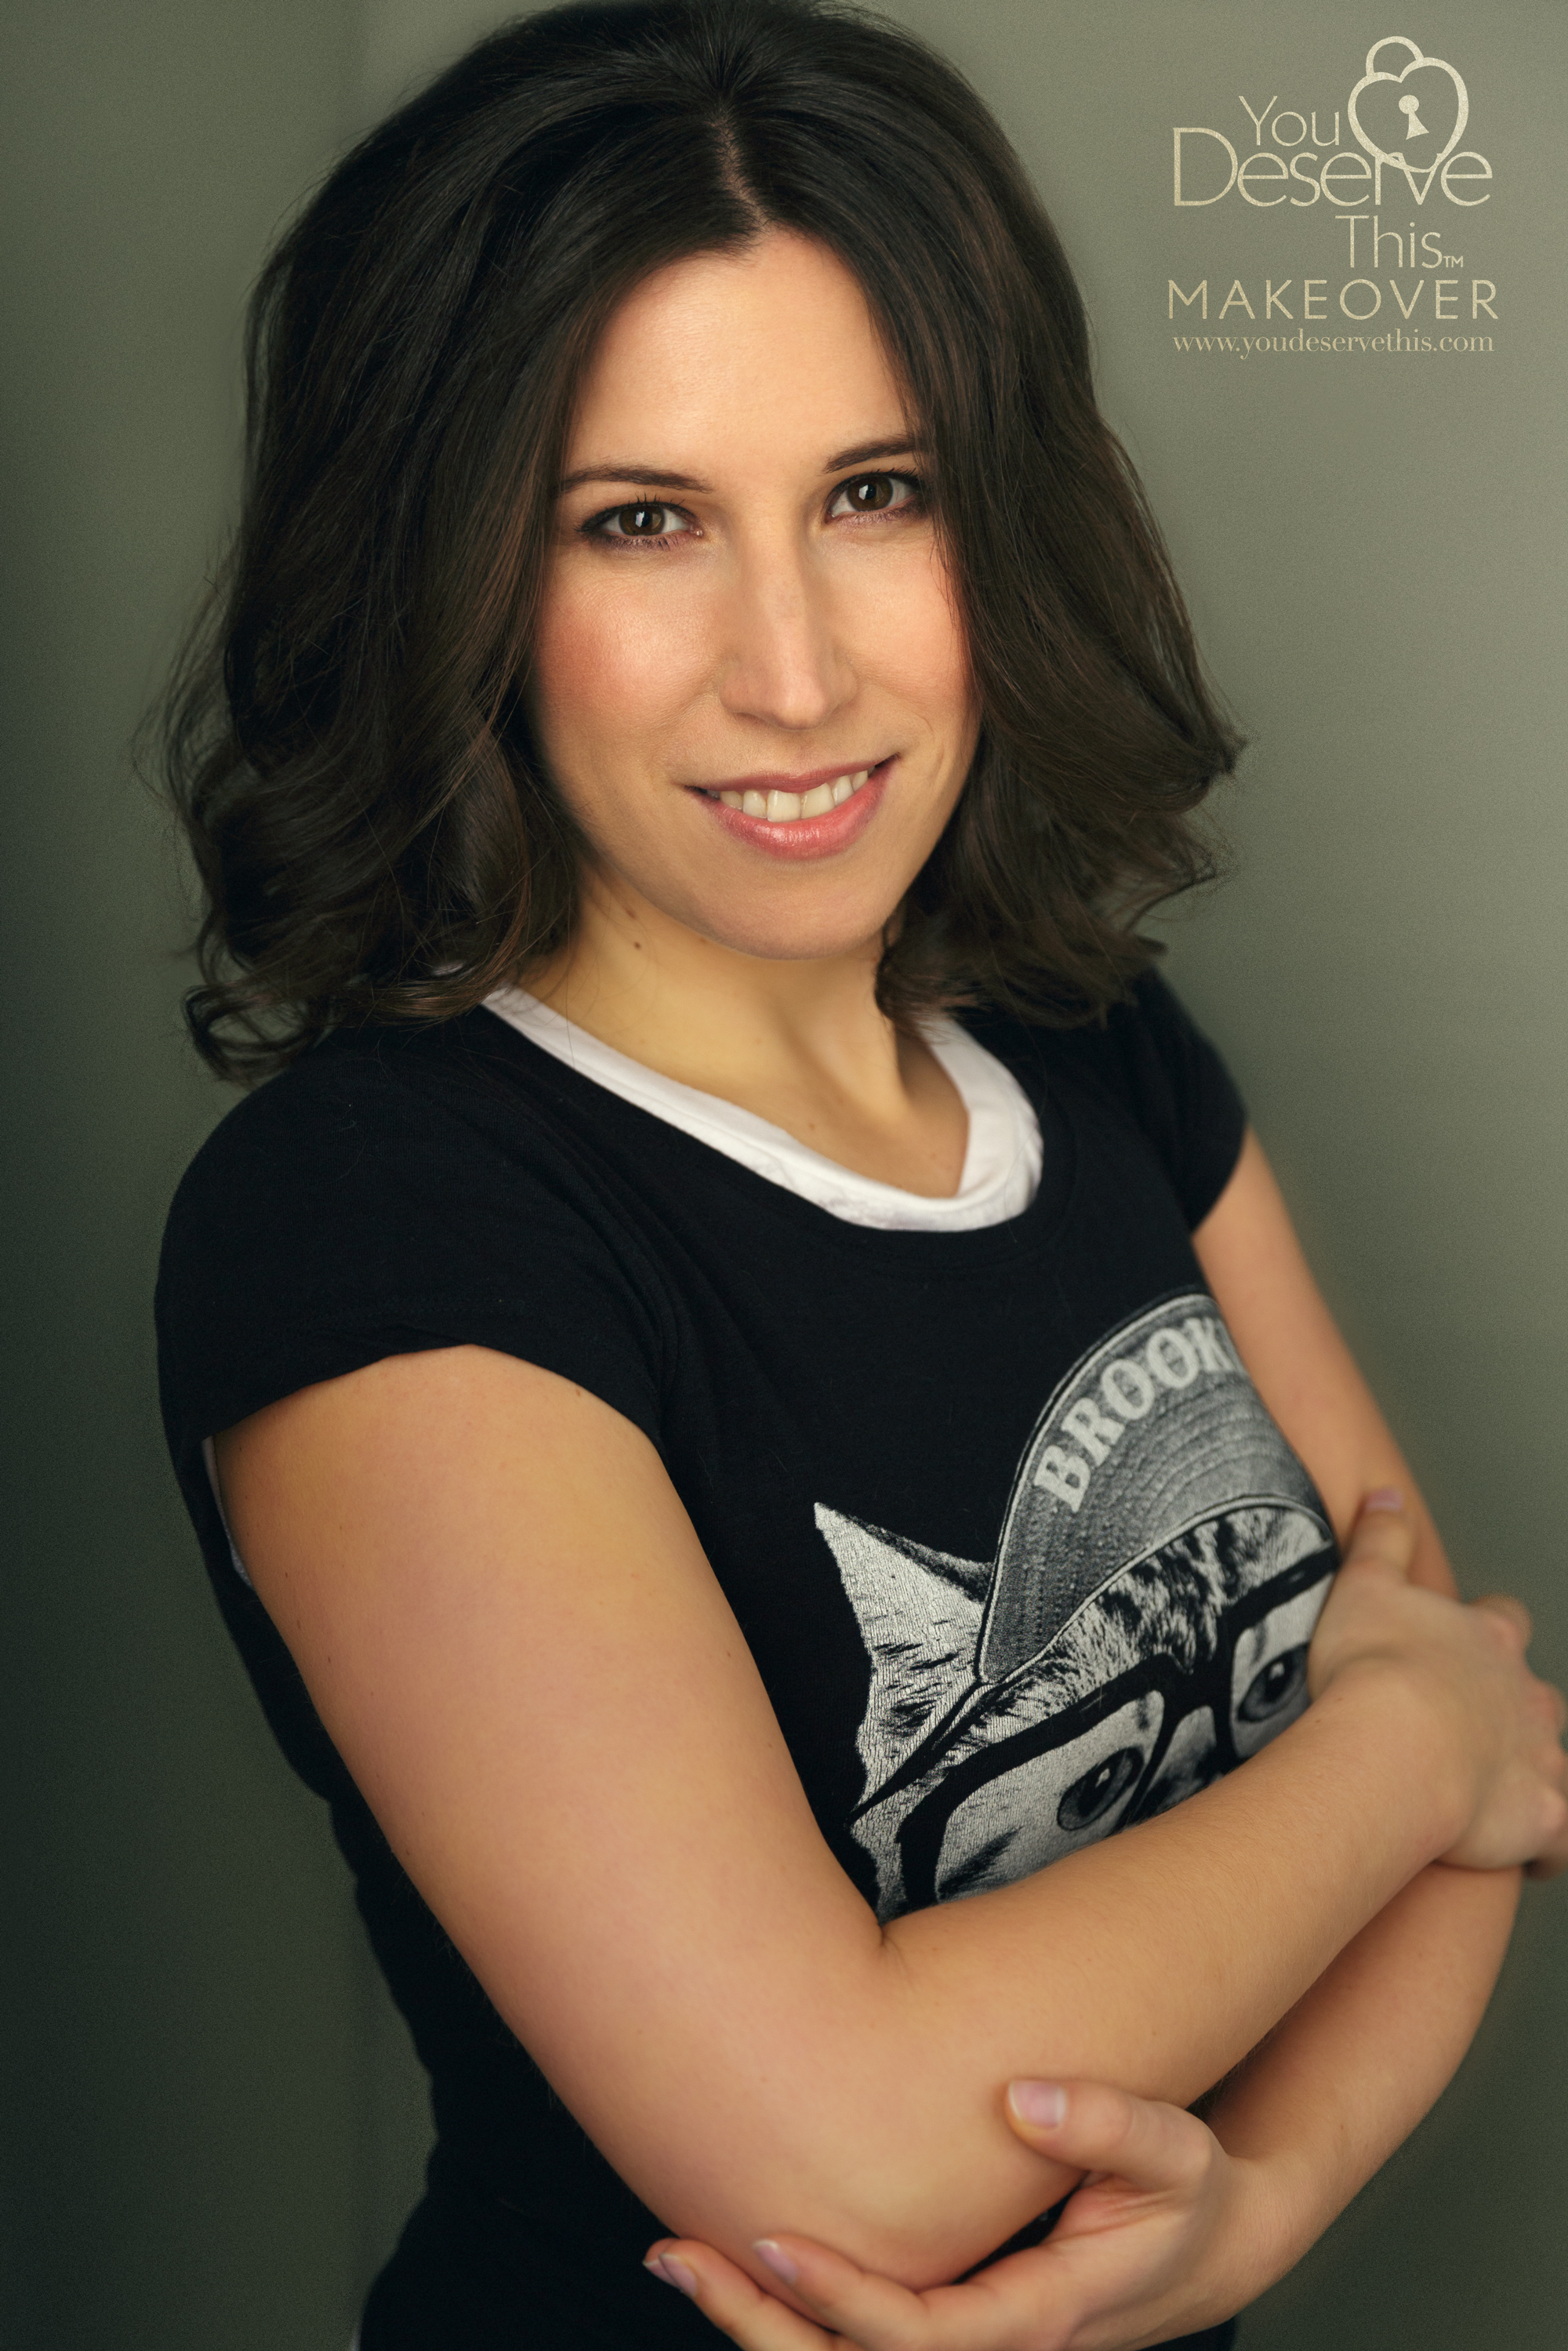 Women in STEM  - Dinka shakes off any nerdy stereotypes, nothing like Amy Farrah Fowler at all!   www.youdeservethis.com